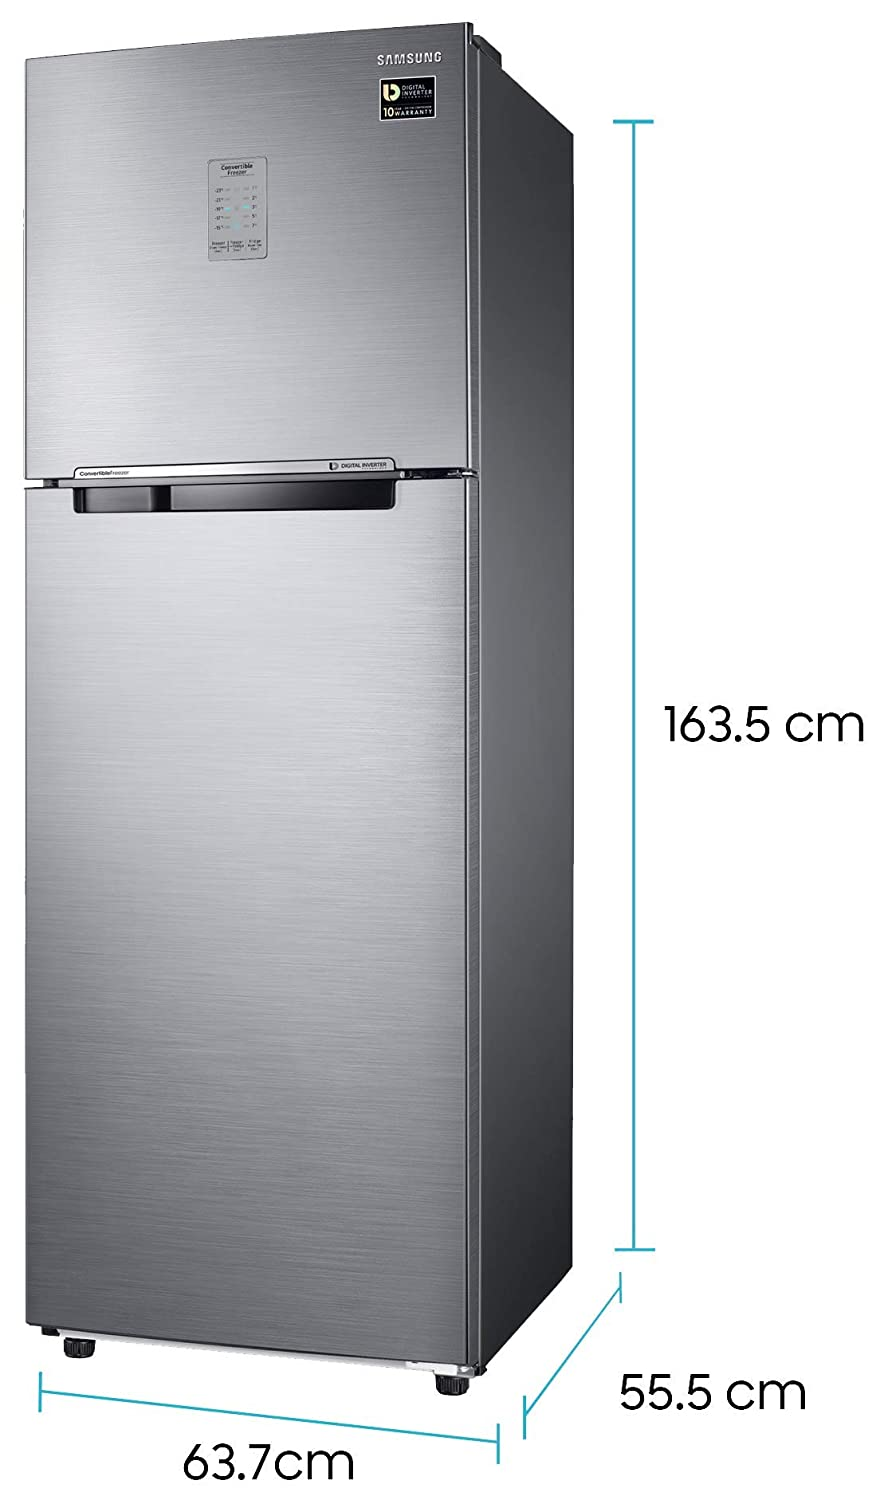 Samsung Roll Over Image To Zoom In Samsung 275 L 2 Star Inverter Frost-Free Double Door Refrigerator